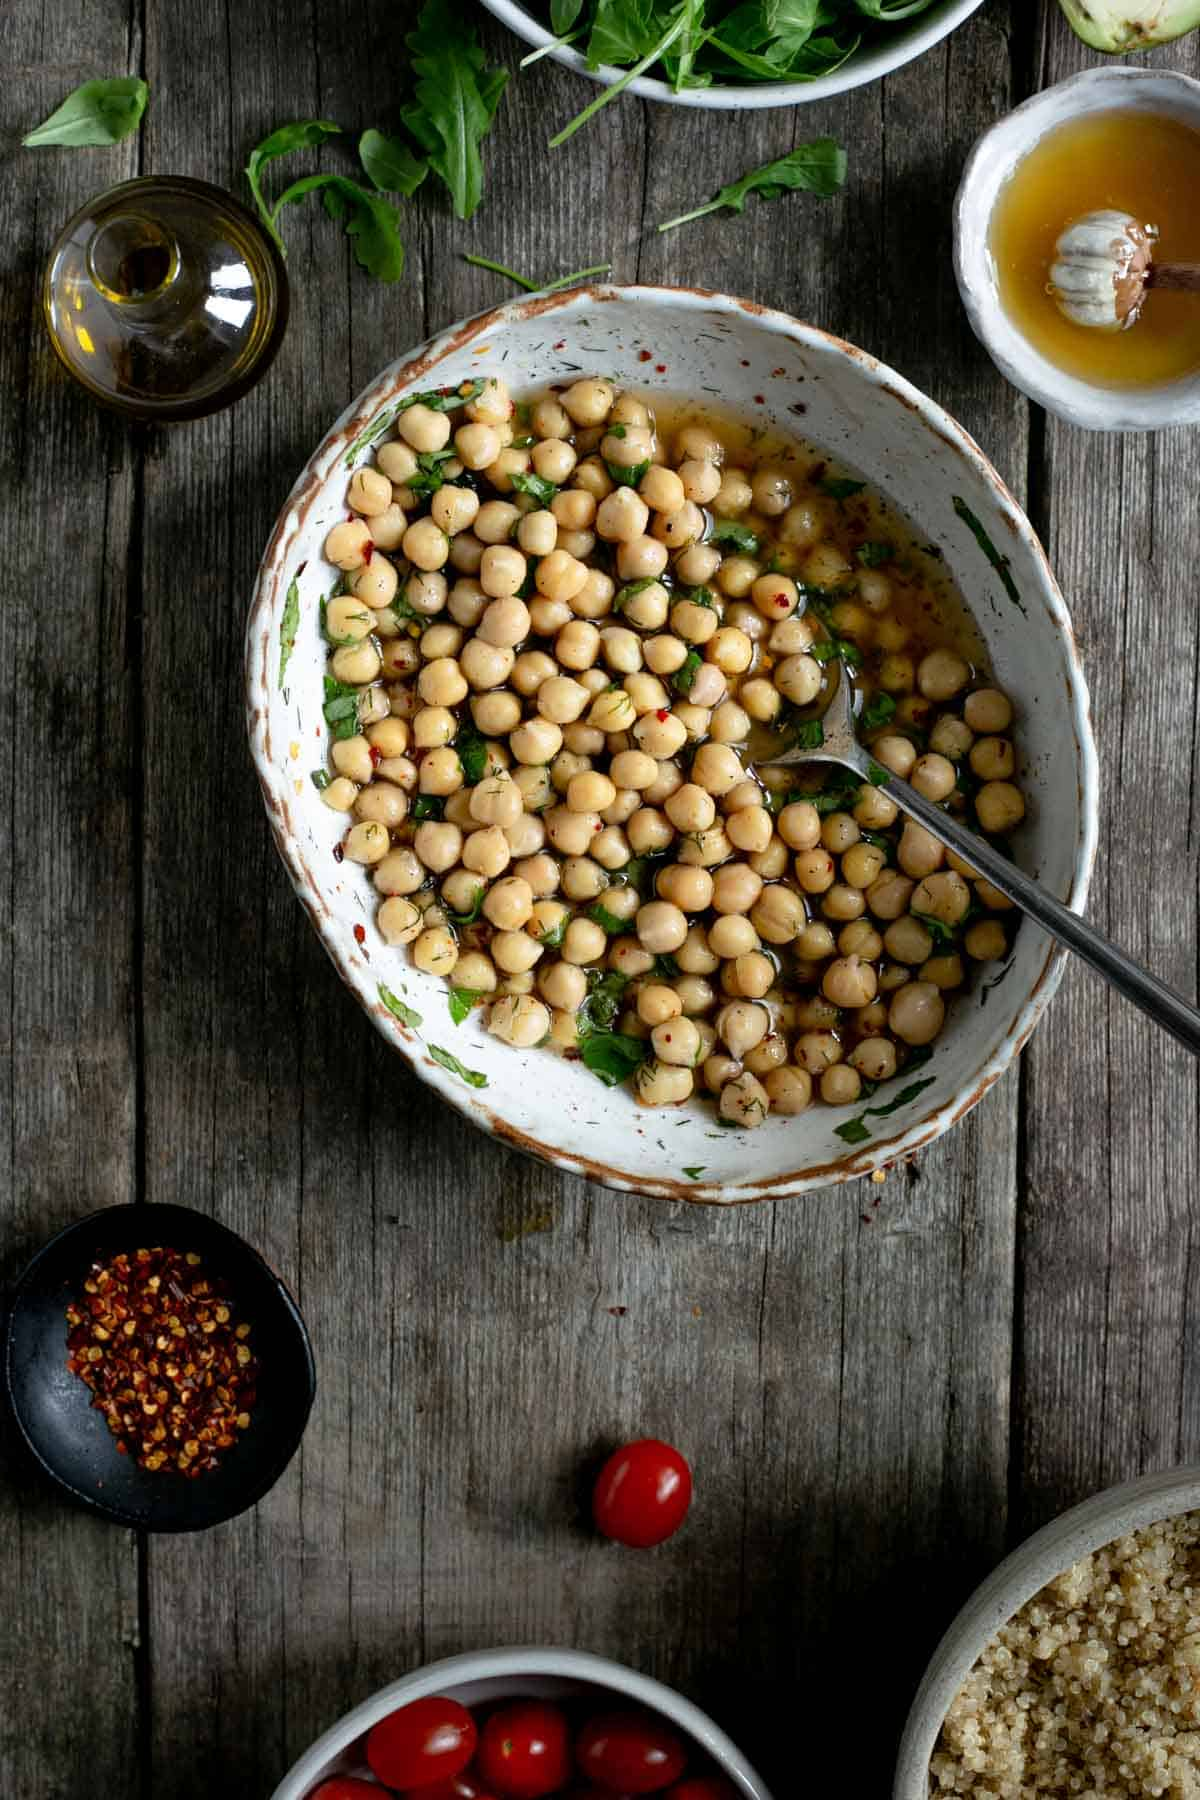 Marinated chickpeas for tomato and quinoa salad jars #vegan #veganrecipe #saladjars | via @annabanana.co